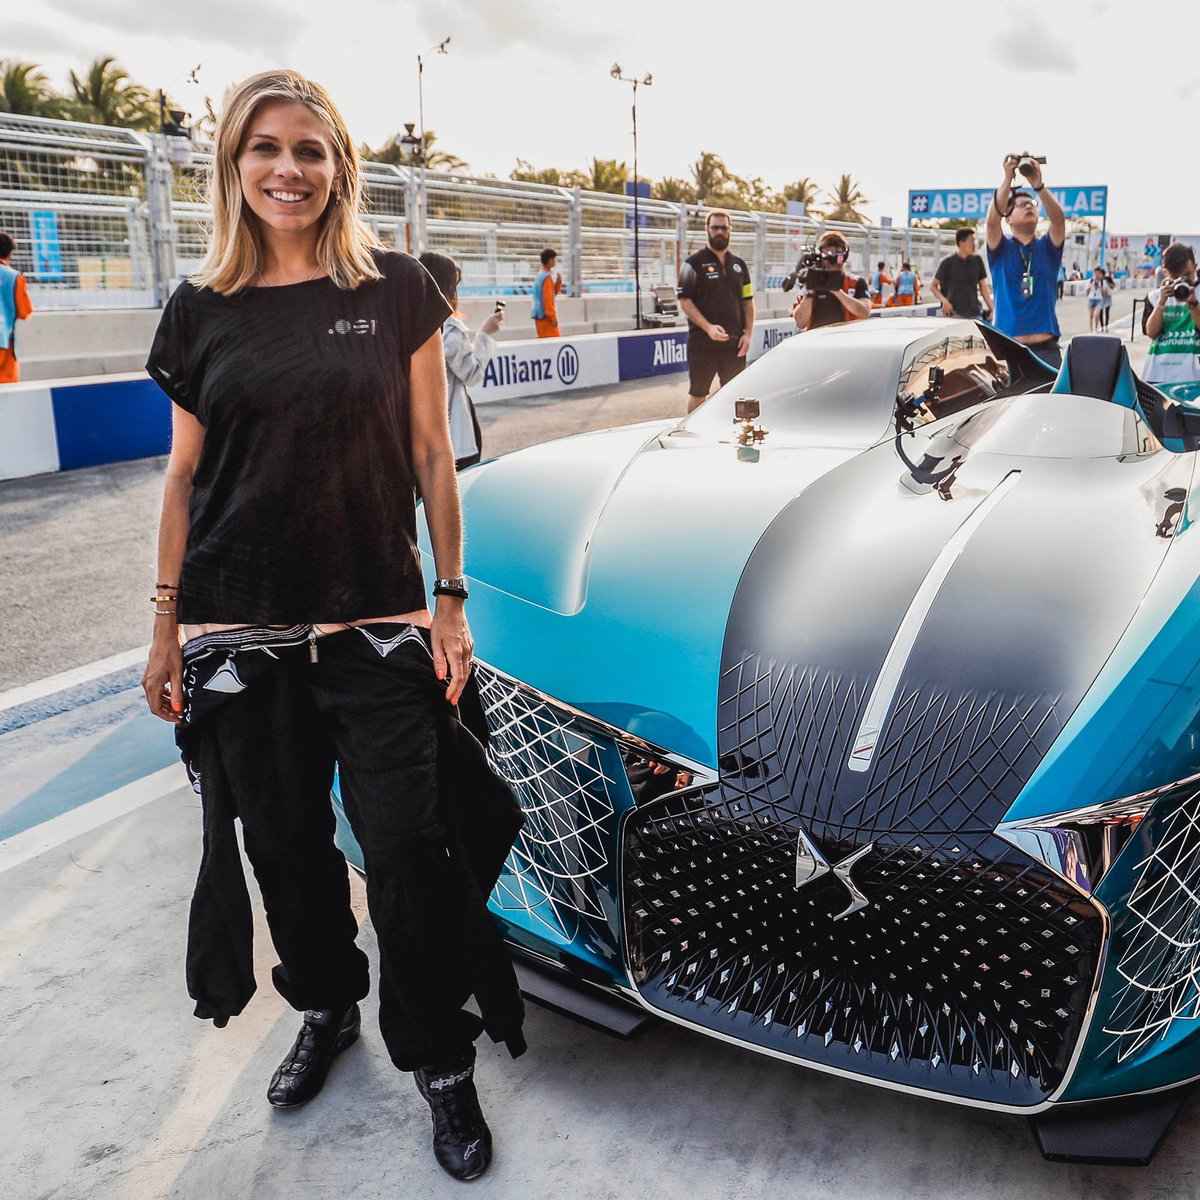 #TBT Can you guess what I'm hiding here?  I was 6 months pregnant but this wasn't going to stop me trying the DS E-TENSE concept car… I love driving too much!! I guess this was Arthur's first track day heheh  @DS_UK_Official #etense #dsetense #ds #formulae #electriccar https://t.co/RCQaYK8Se4